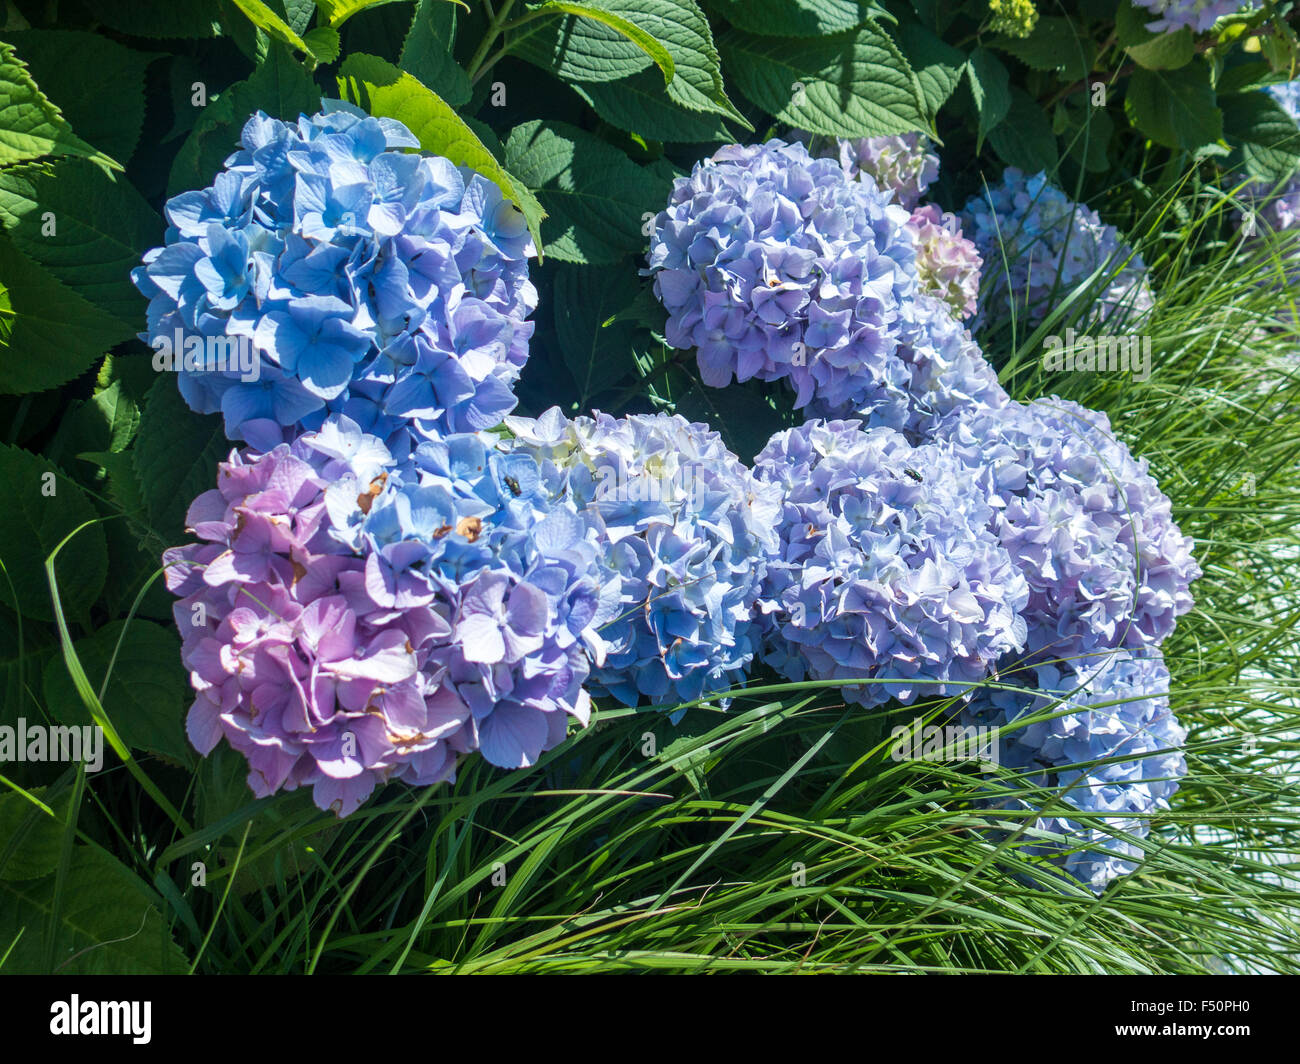 Blue and pink hydrangeas - Stock Image